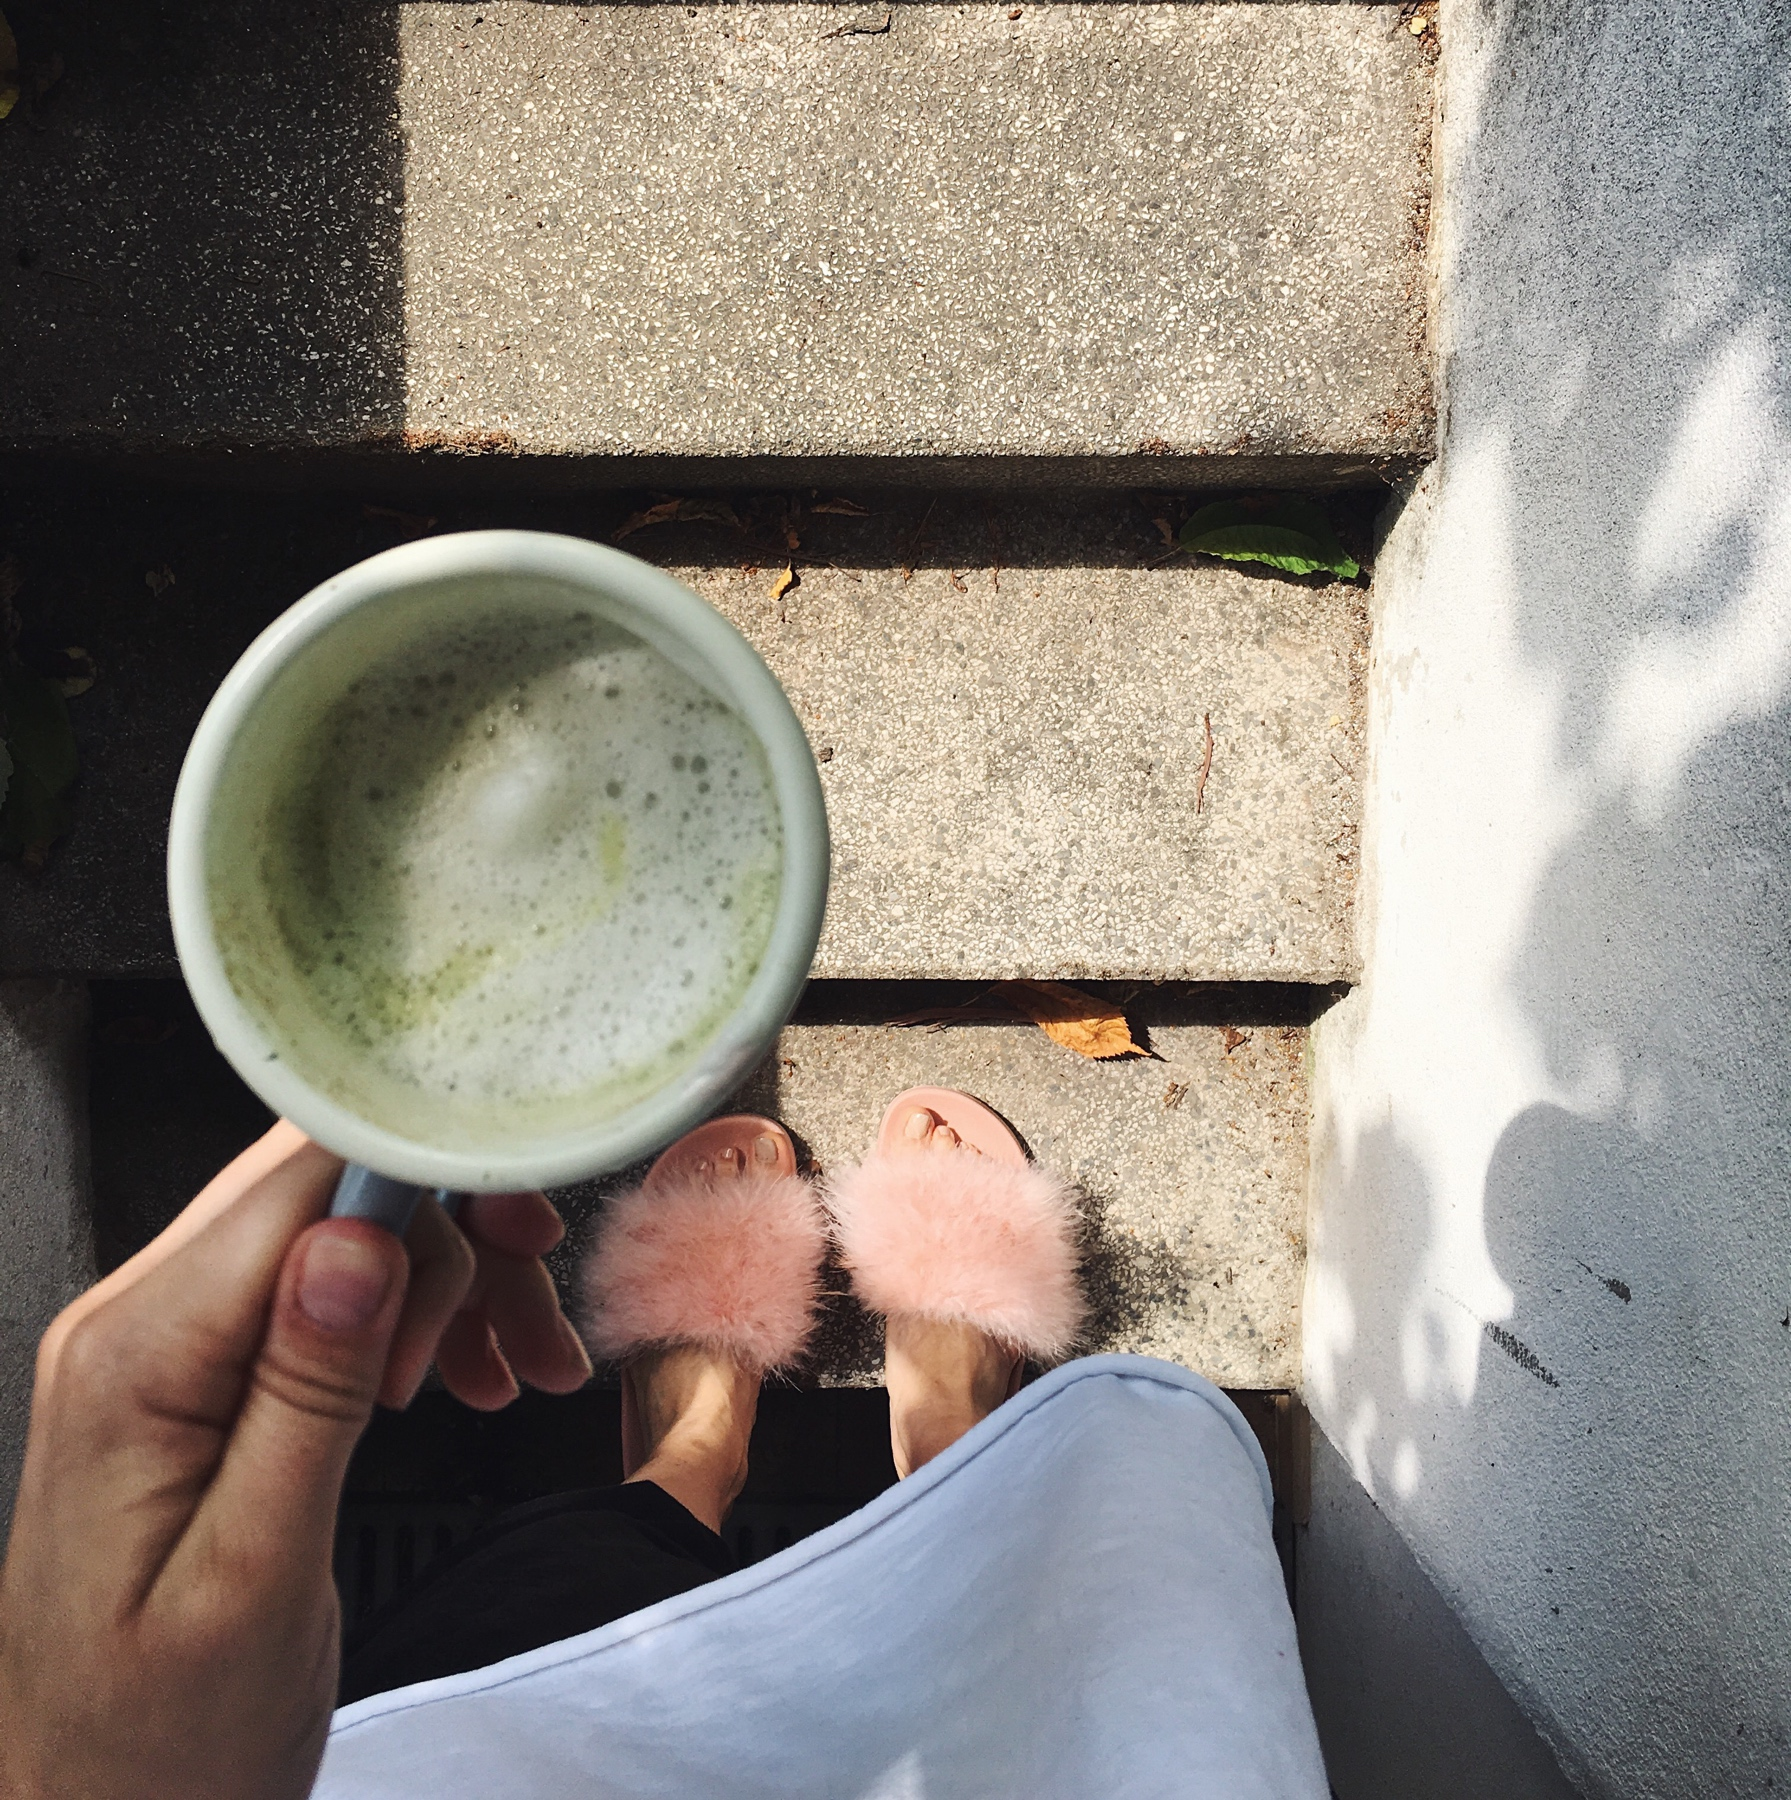 taking a moment between sneezing for morning matcha  #weekendvibes